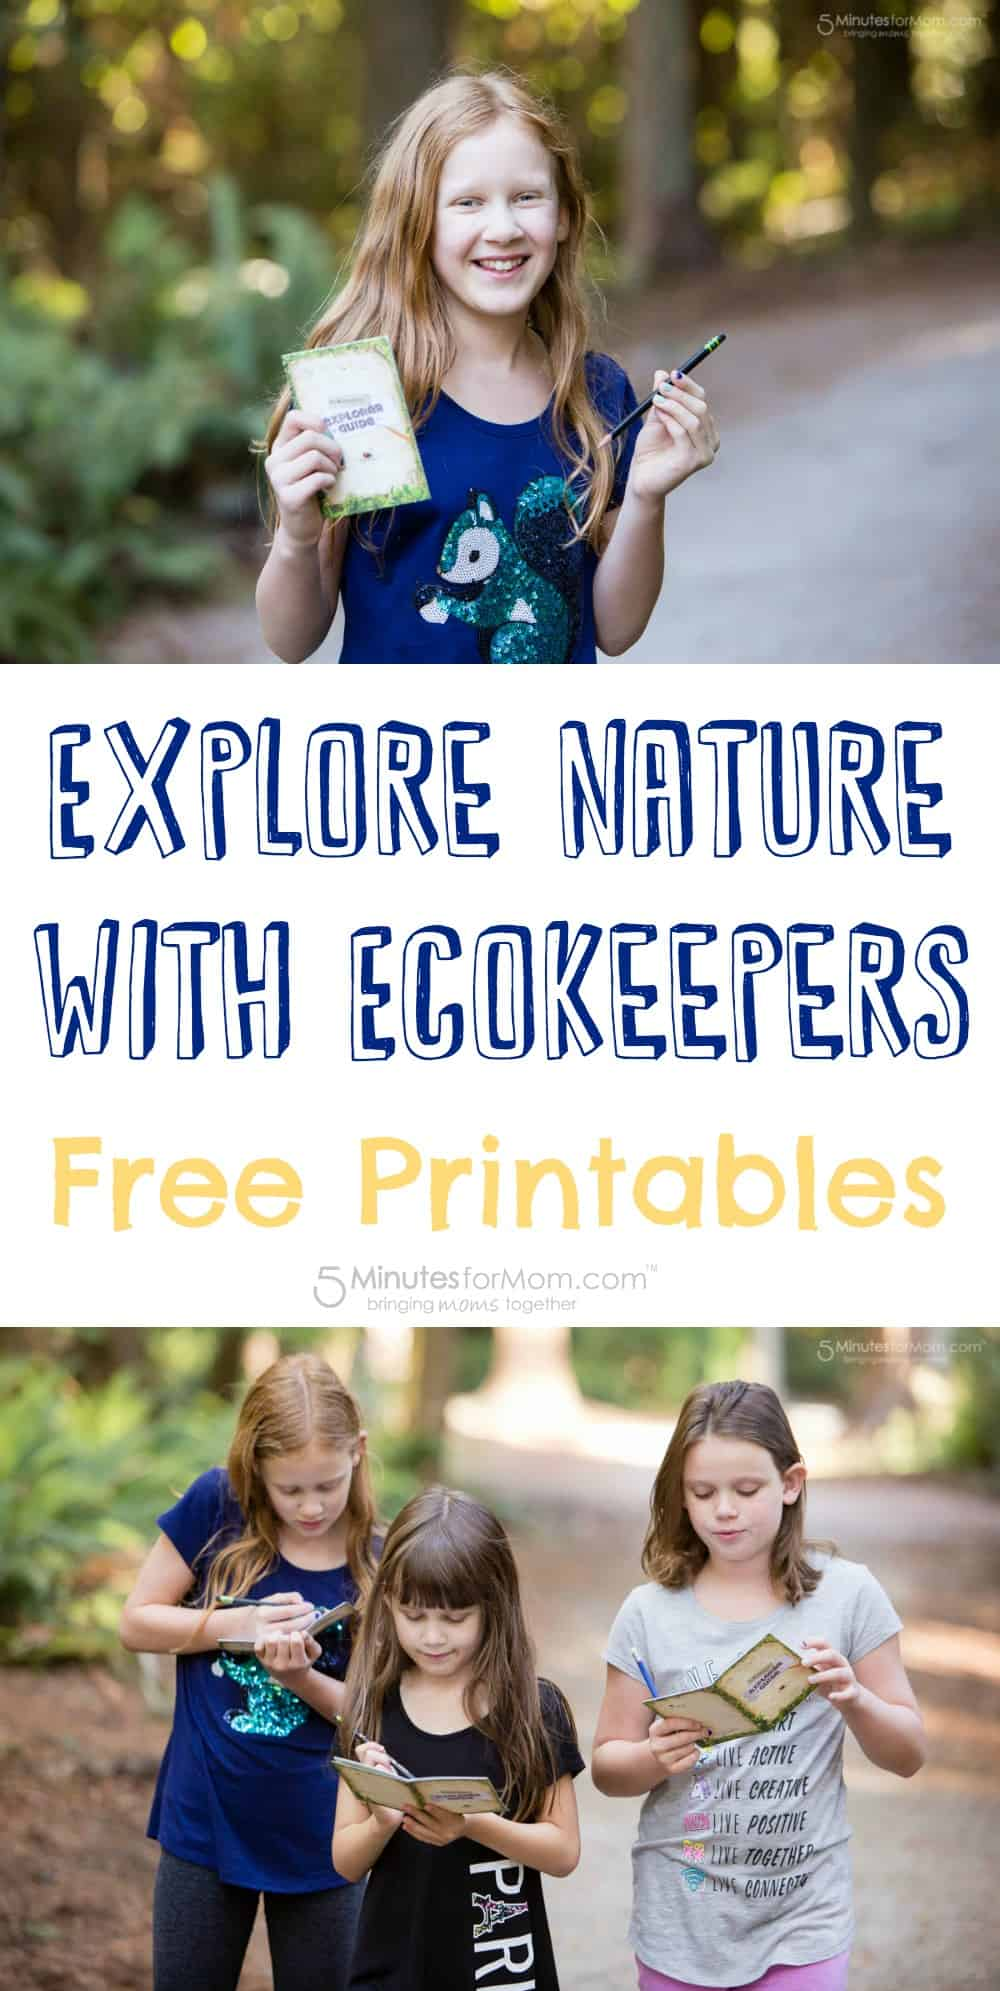 Explore nature with ecokeepers